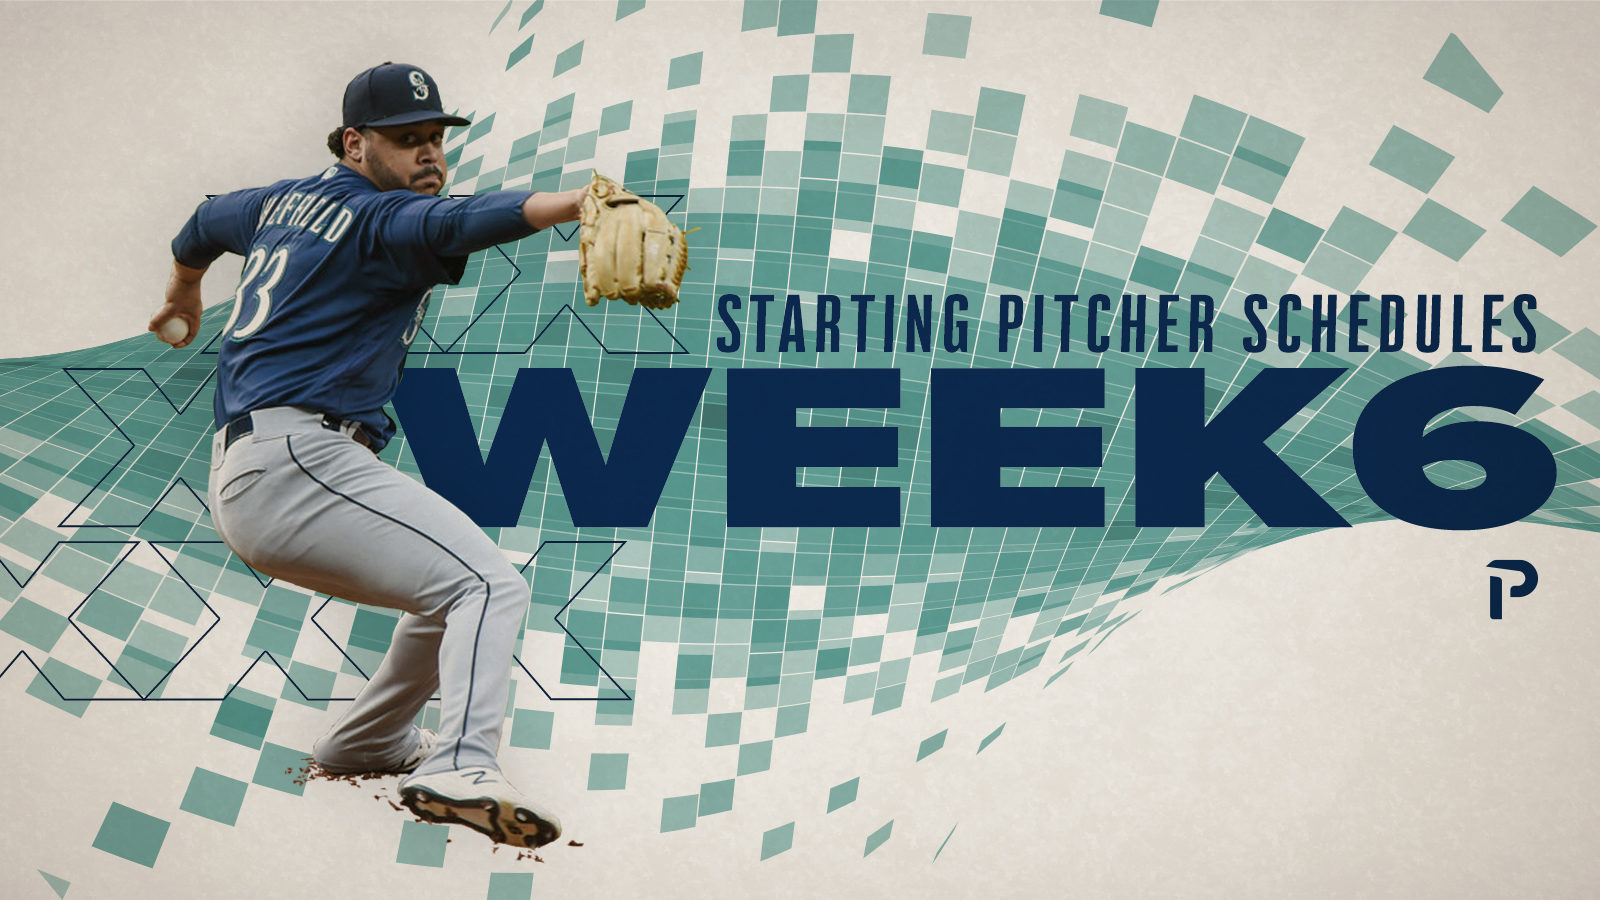 Pitchingschedules_week6_sheff-1600x900